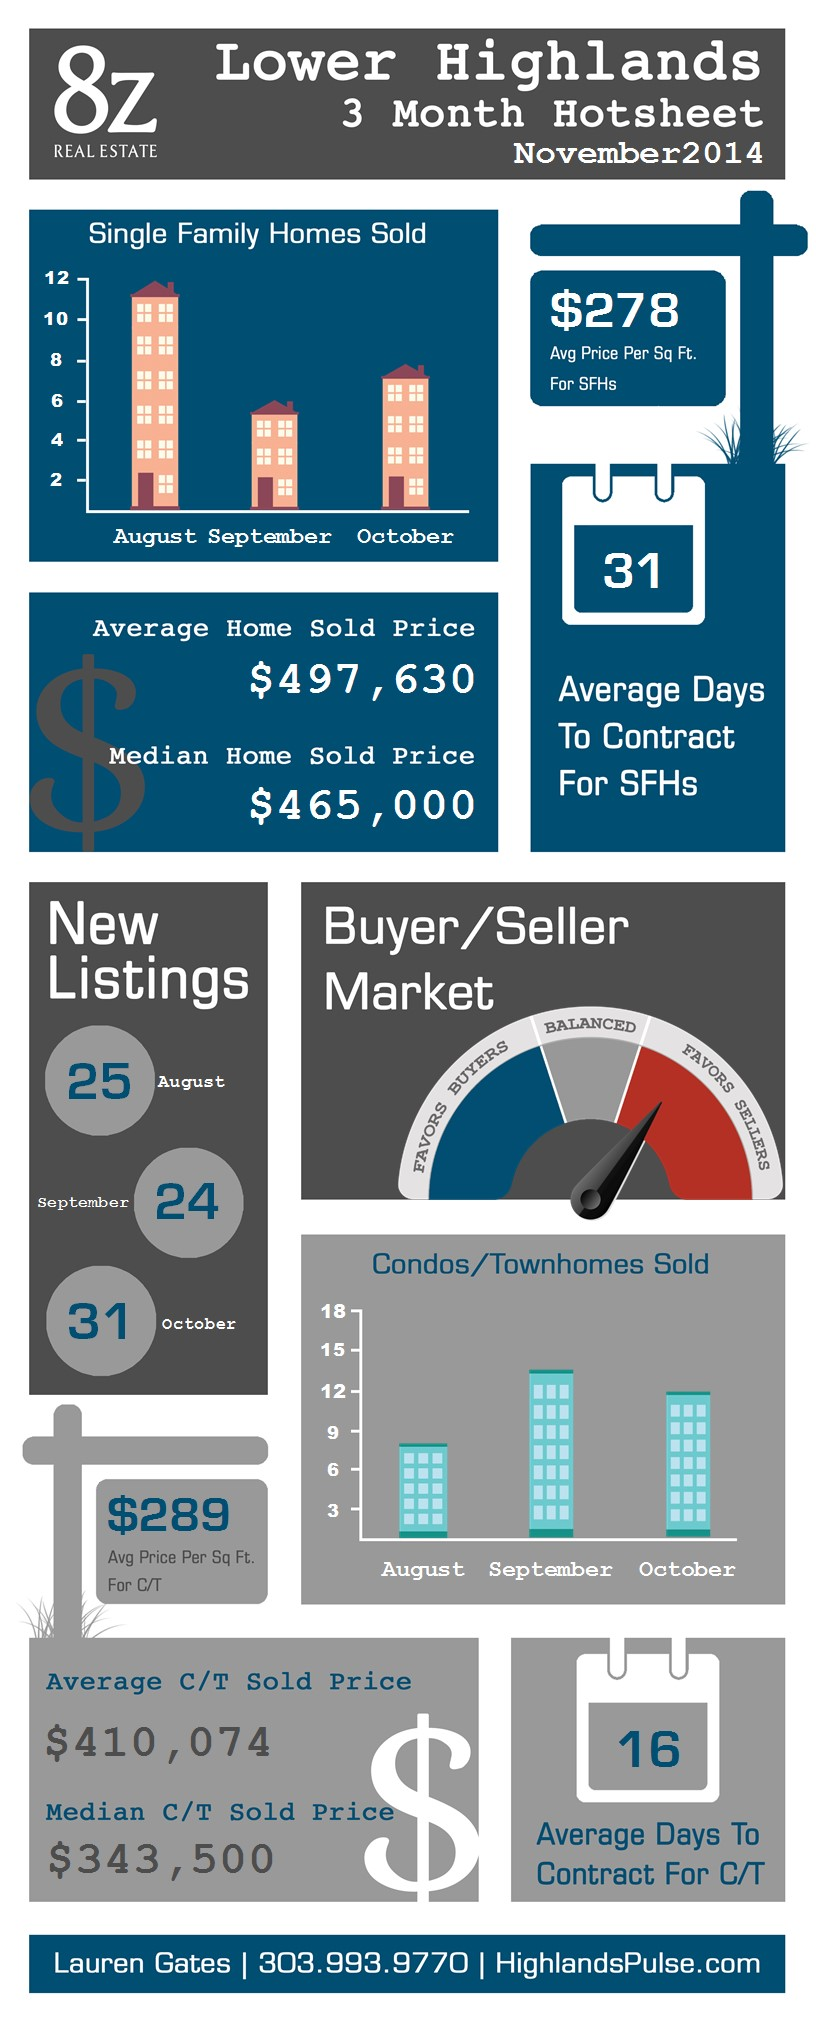 Lower Highlands - Denver, real estate infographic